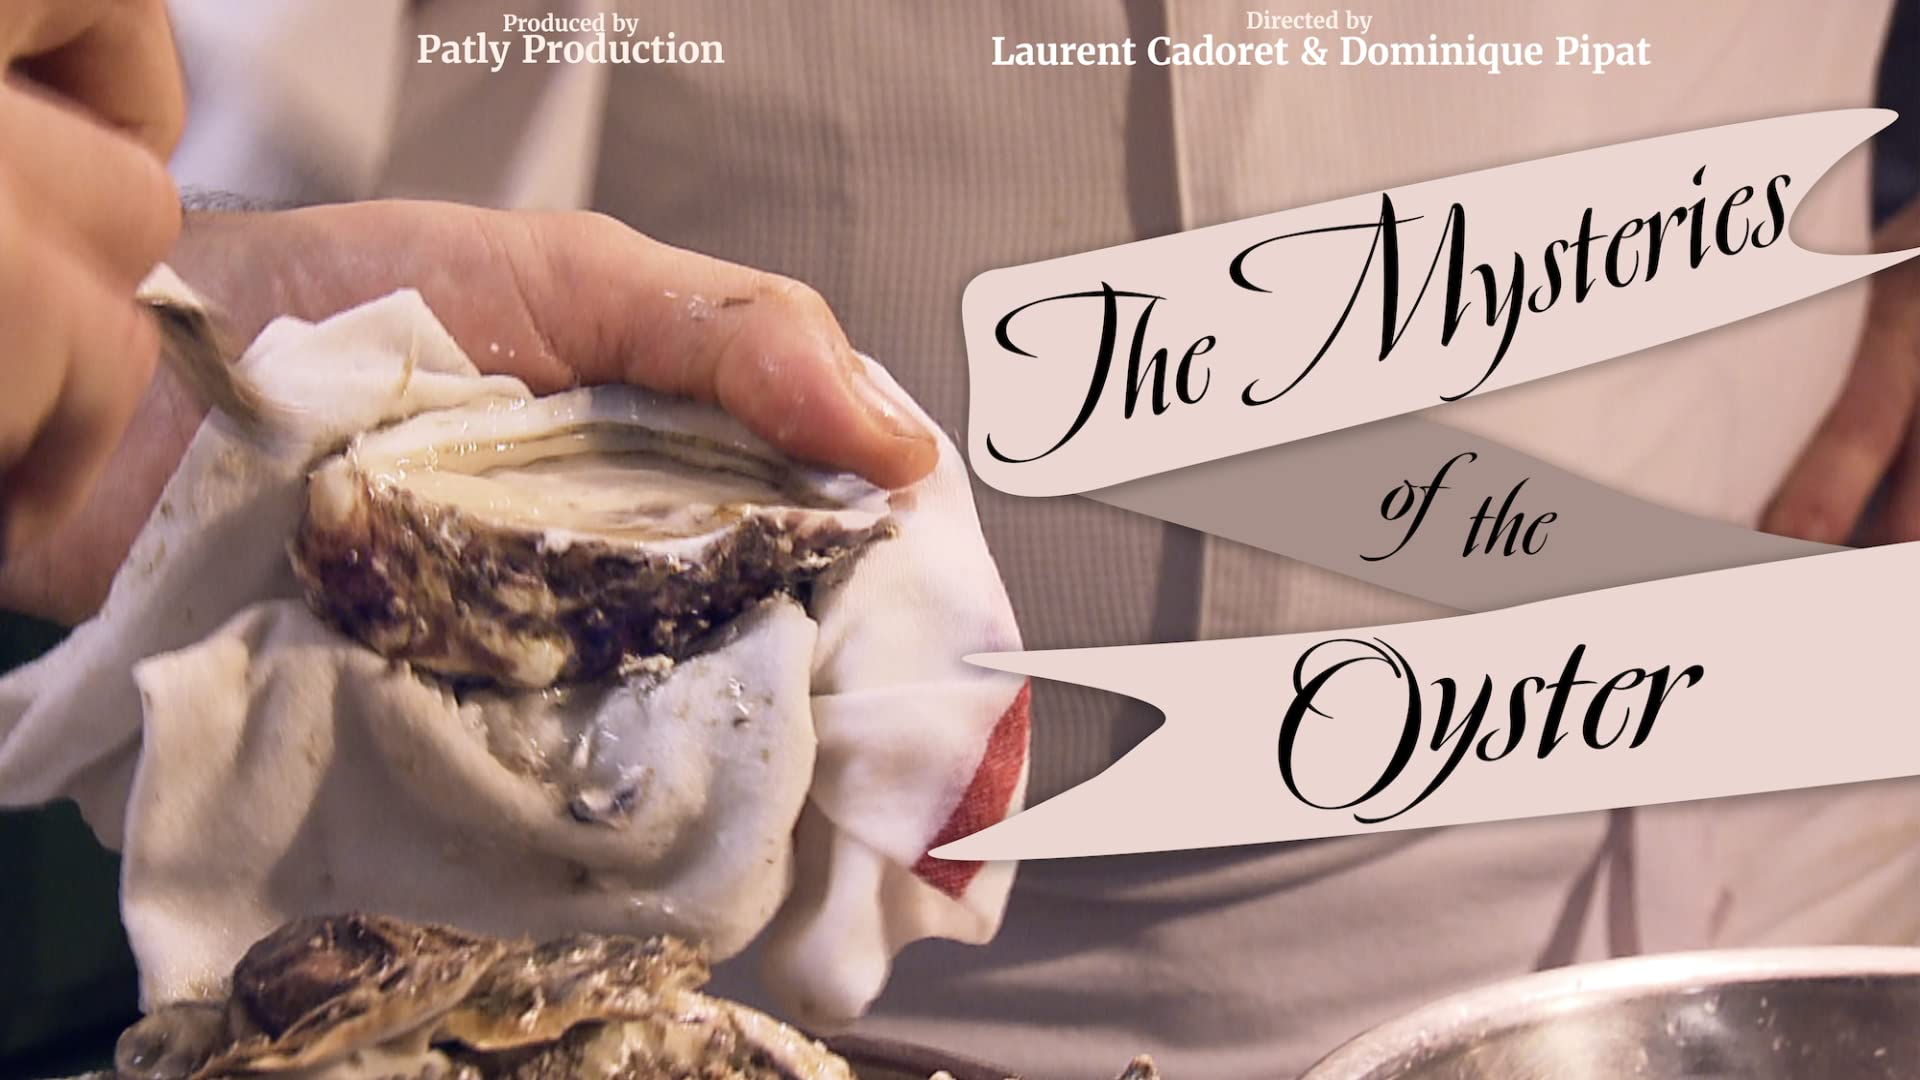 The Mysteries of the Oyster